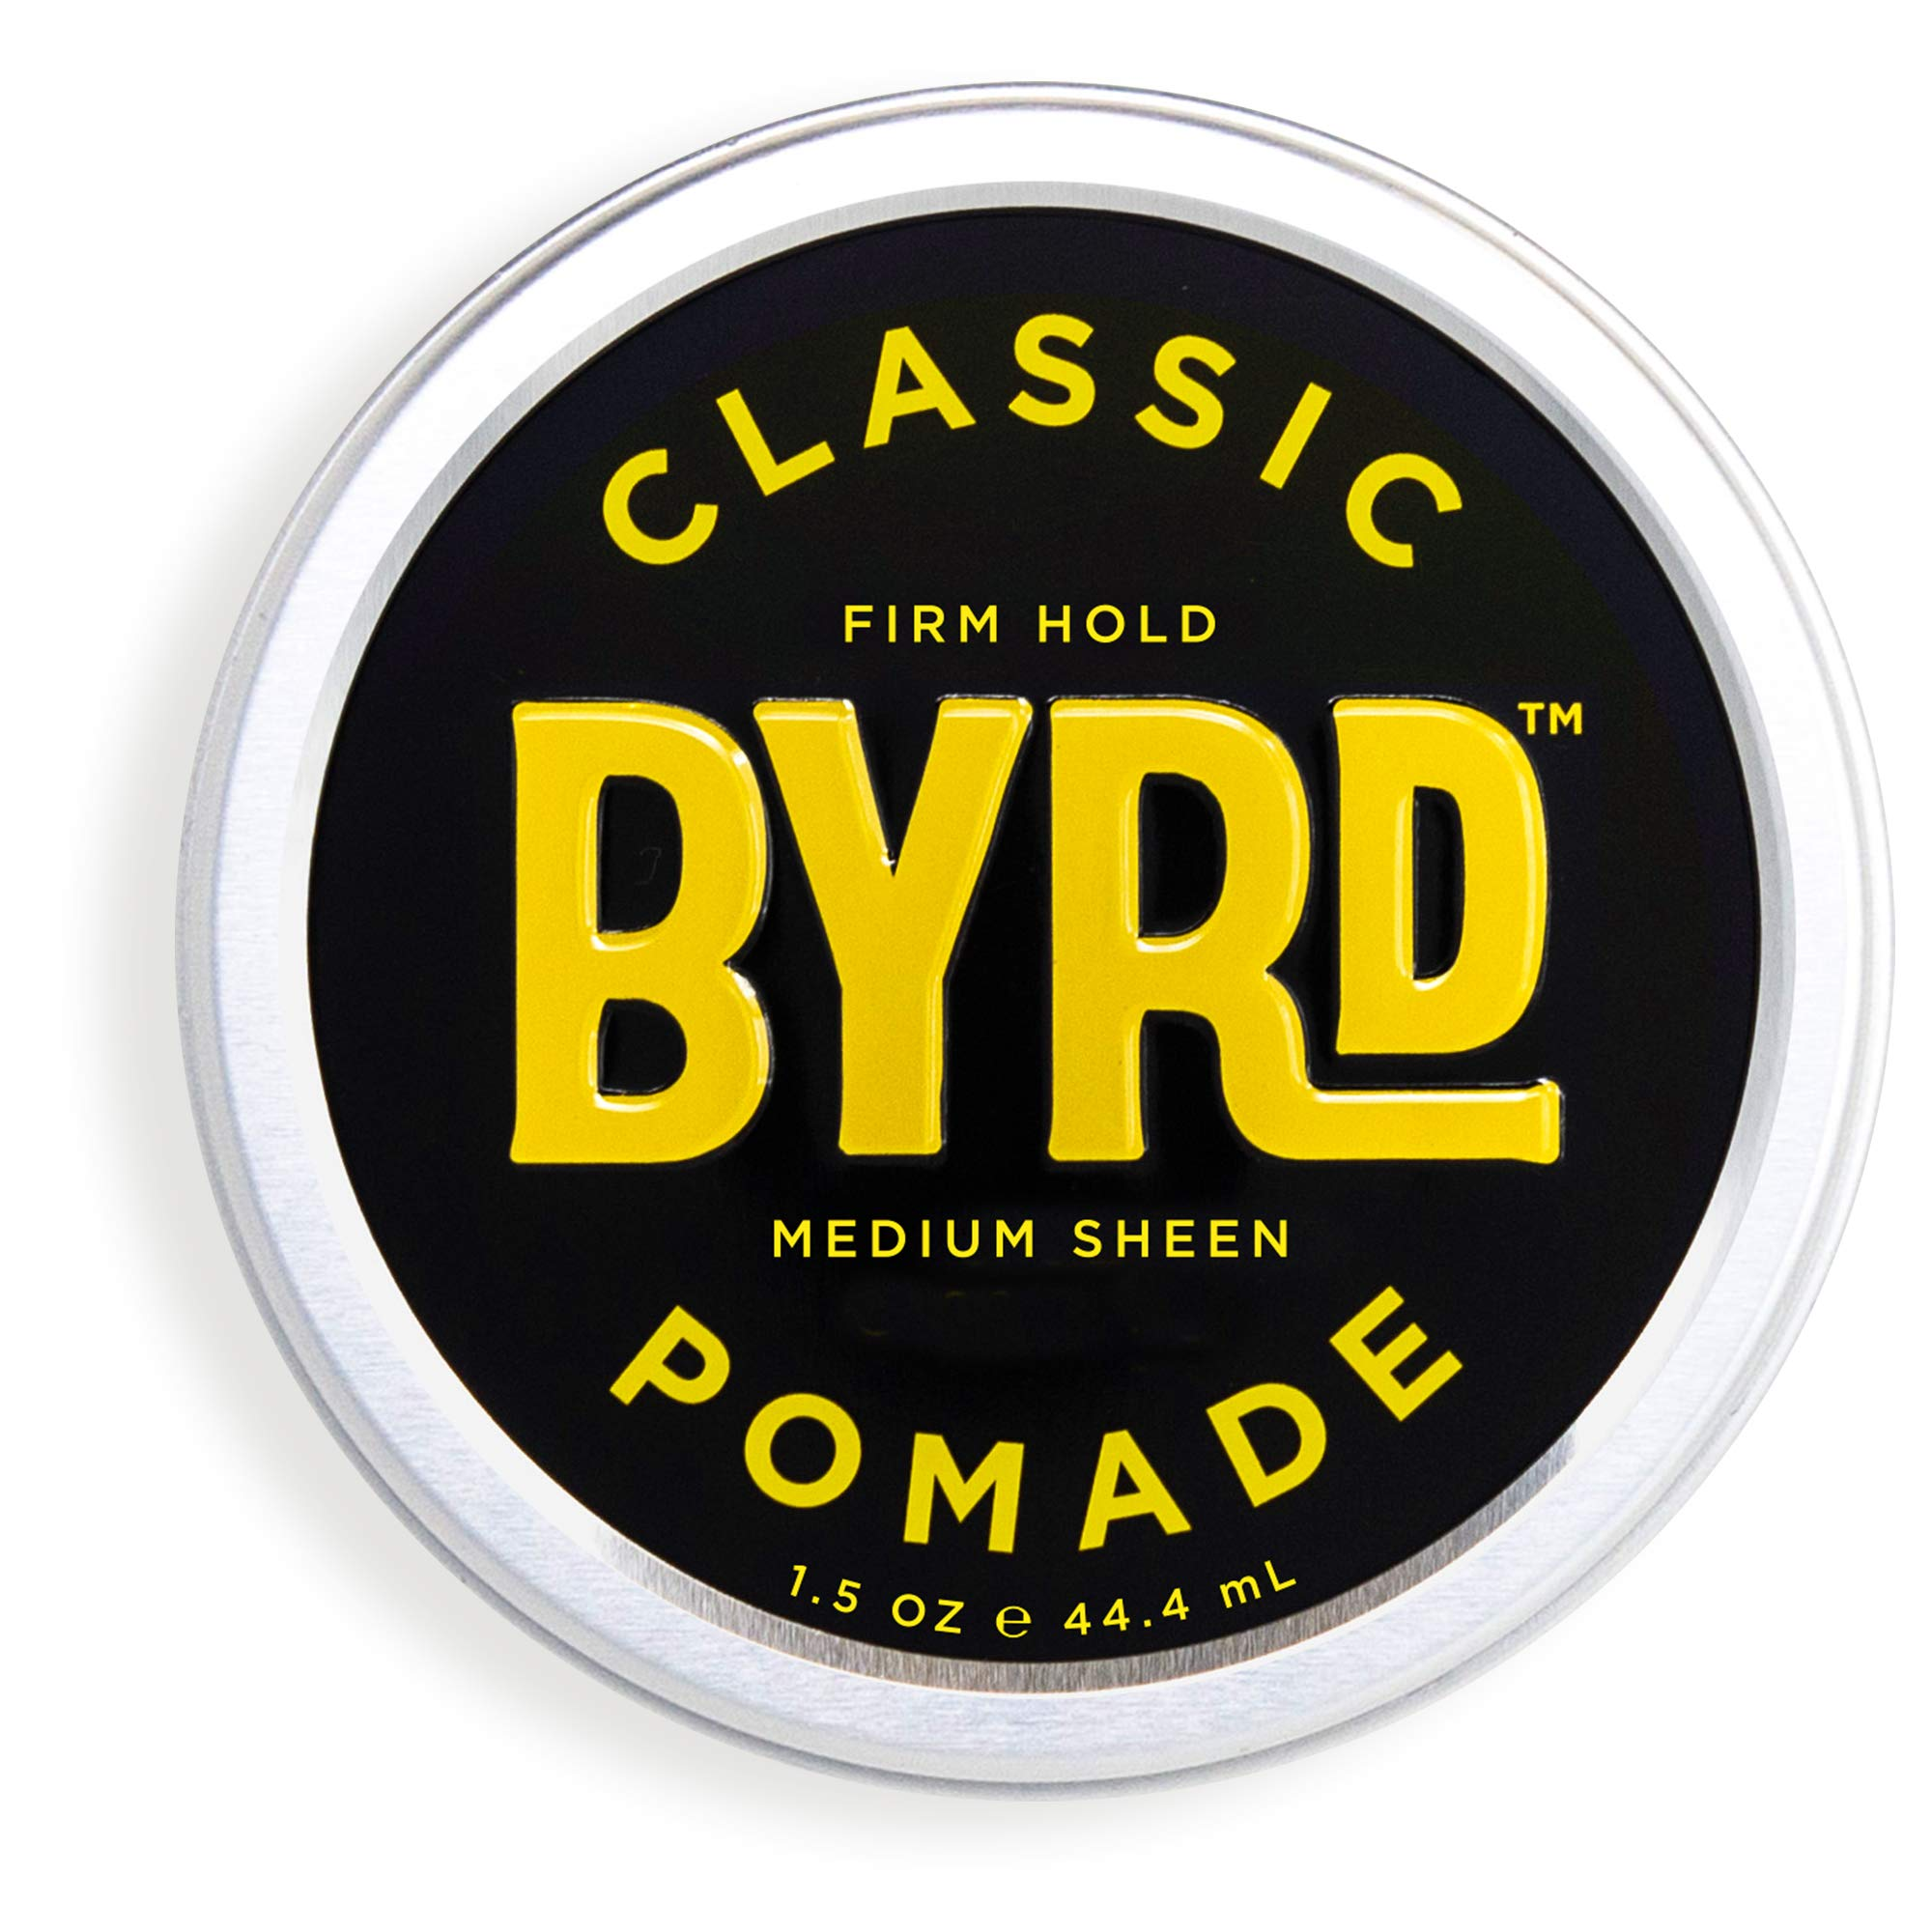 BYRD Classic Pomade - Firm Hold, Medium Sheen, For All Hair Types, Mineral Oil-Free, Paraben-Free, Phthalate-Free, Sulfate-Free, Cruelty-Free, Wax Based, 1.5 Ounces